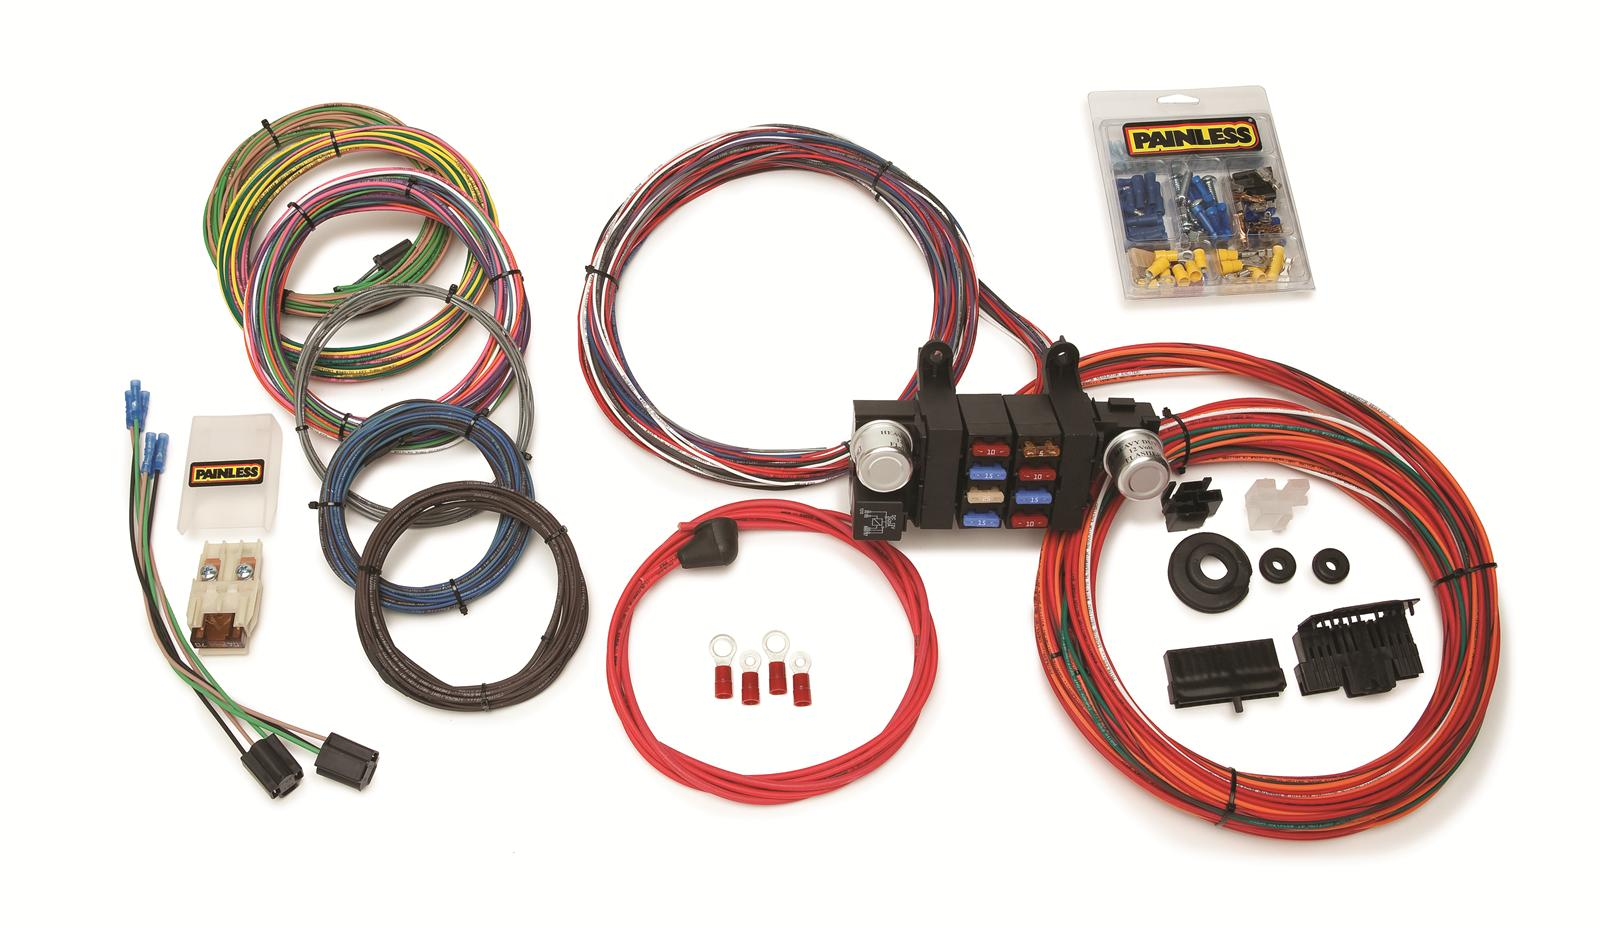 Painless Performance 10308 Painless Performance 18-Circuit Modular Chassis  Harnesses | Summit RacingSummit Racing